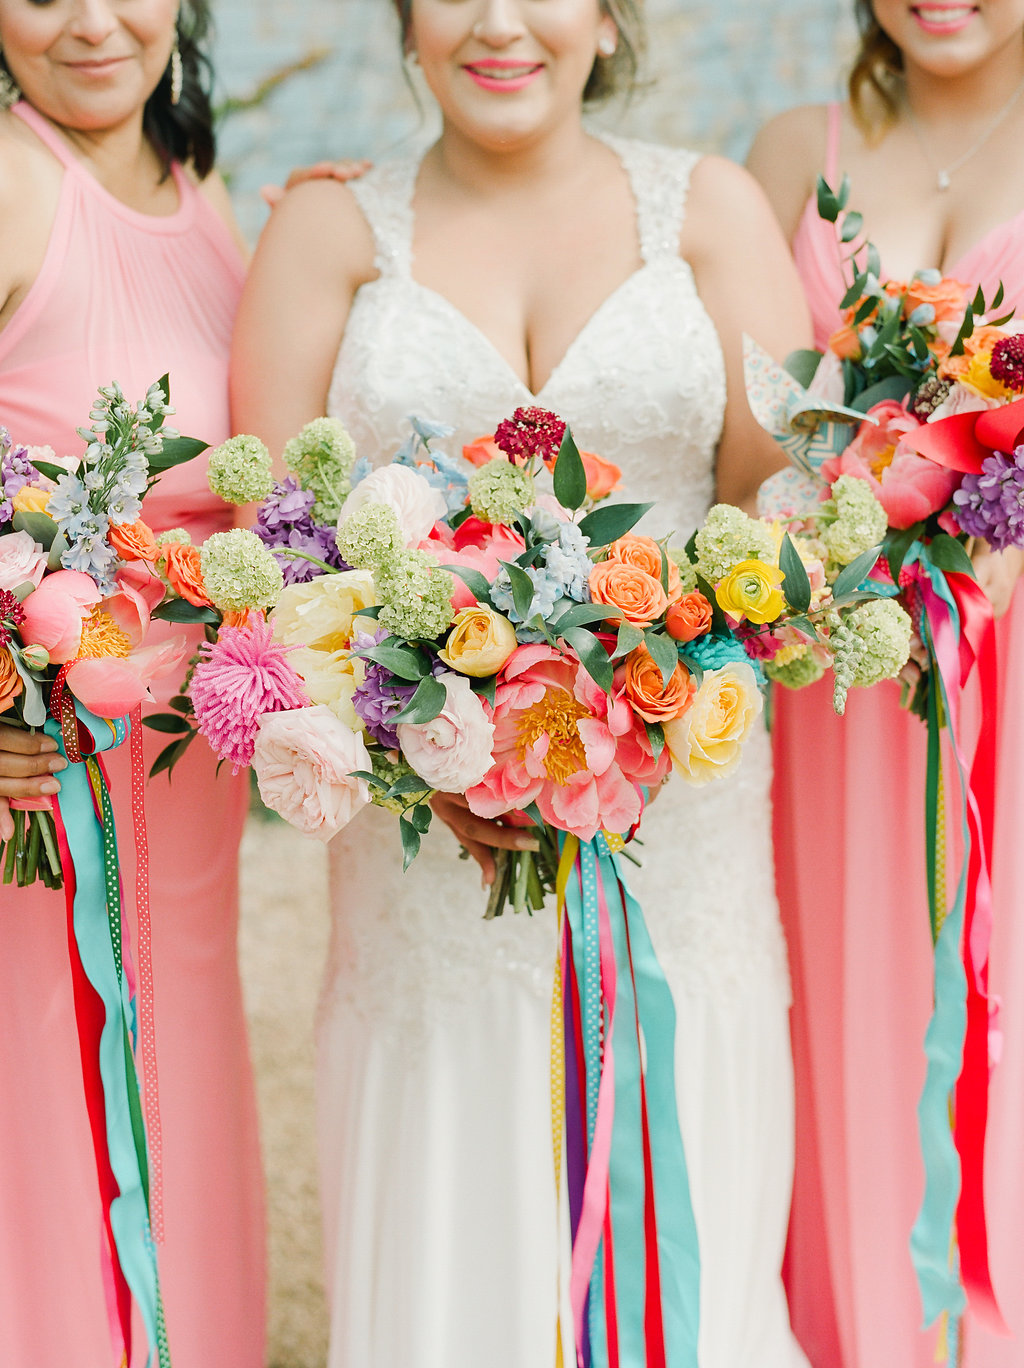 colorful wedding bouquets with bright ribbons - https://ruffledblog.com/modern-playful-texas-carnival-wedding